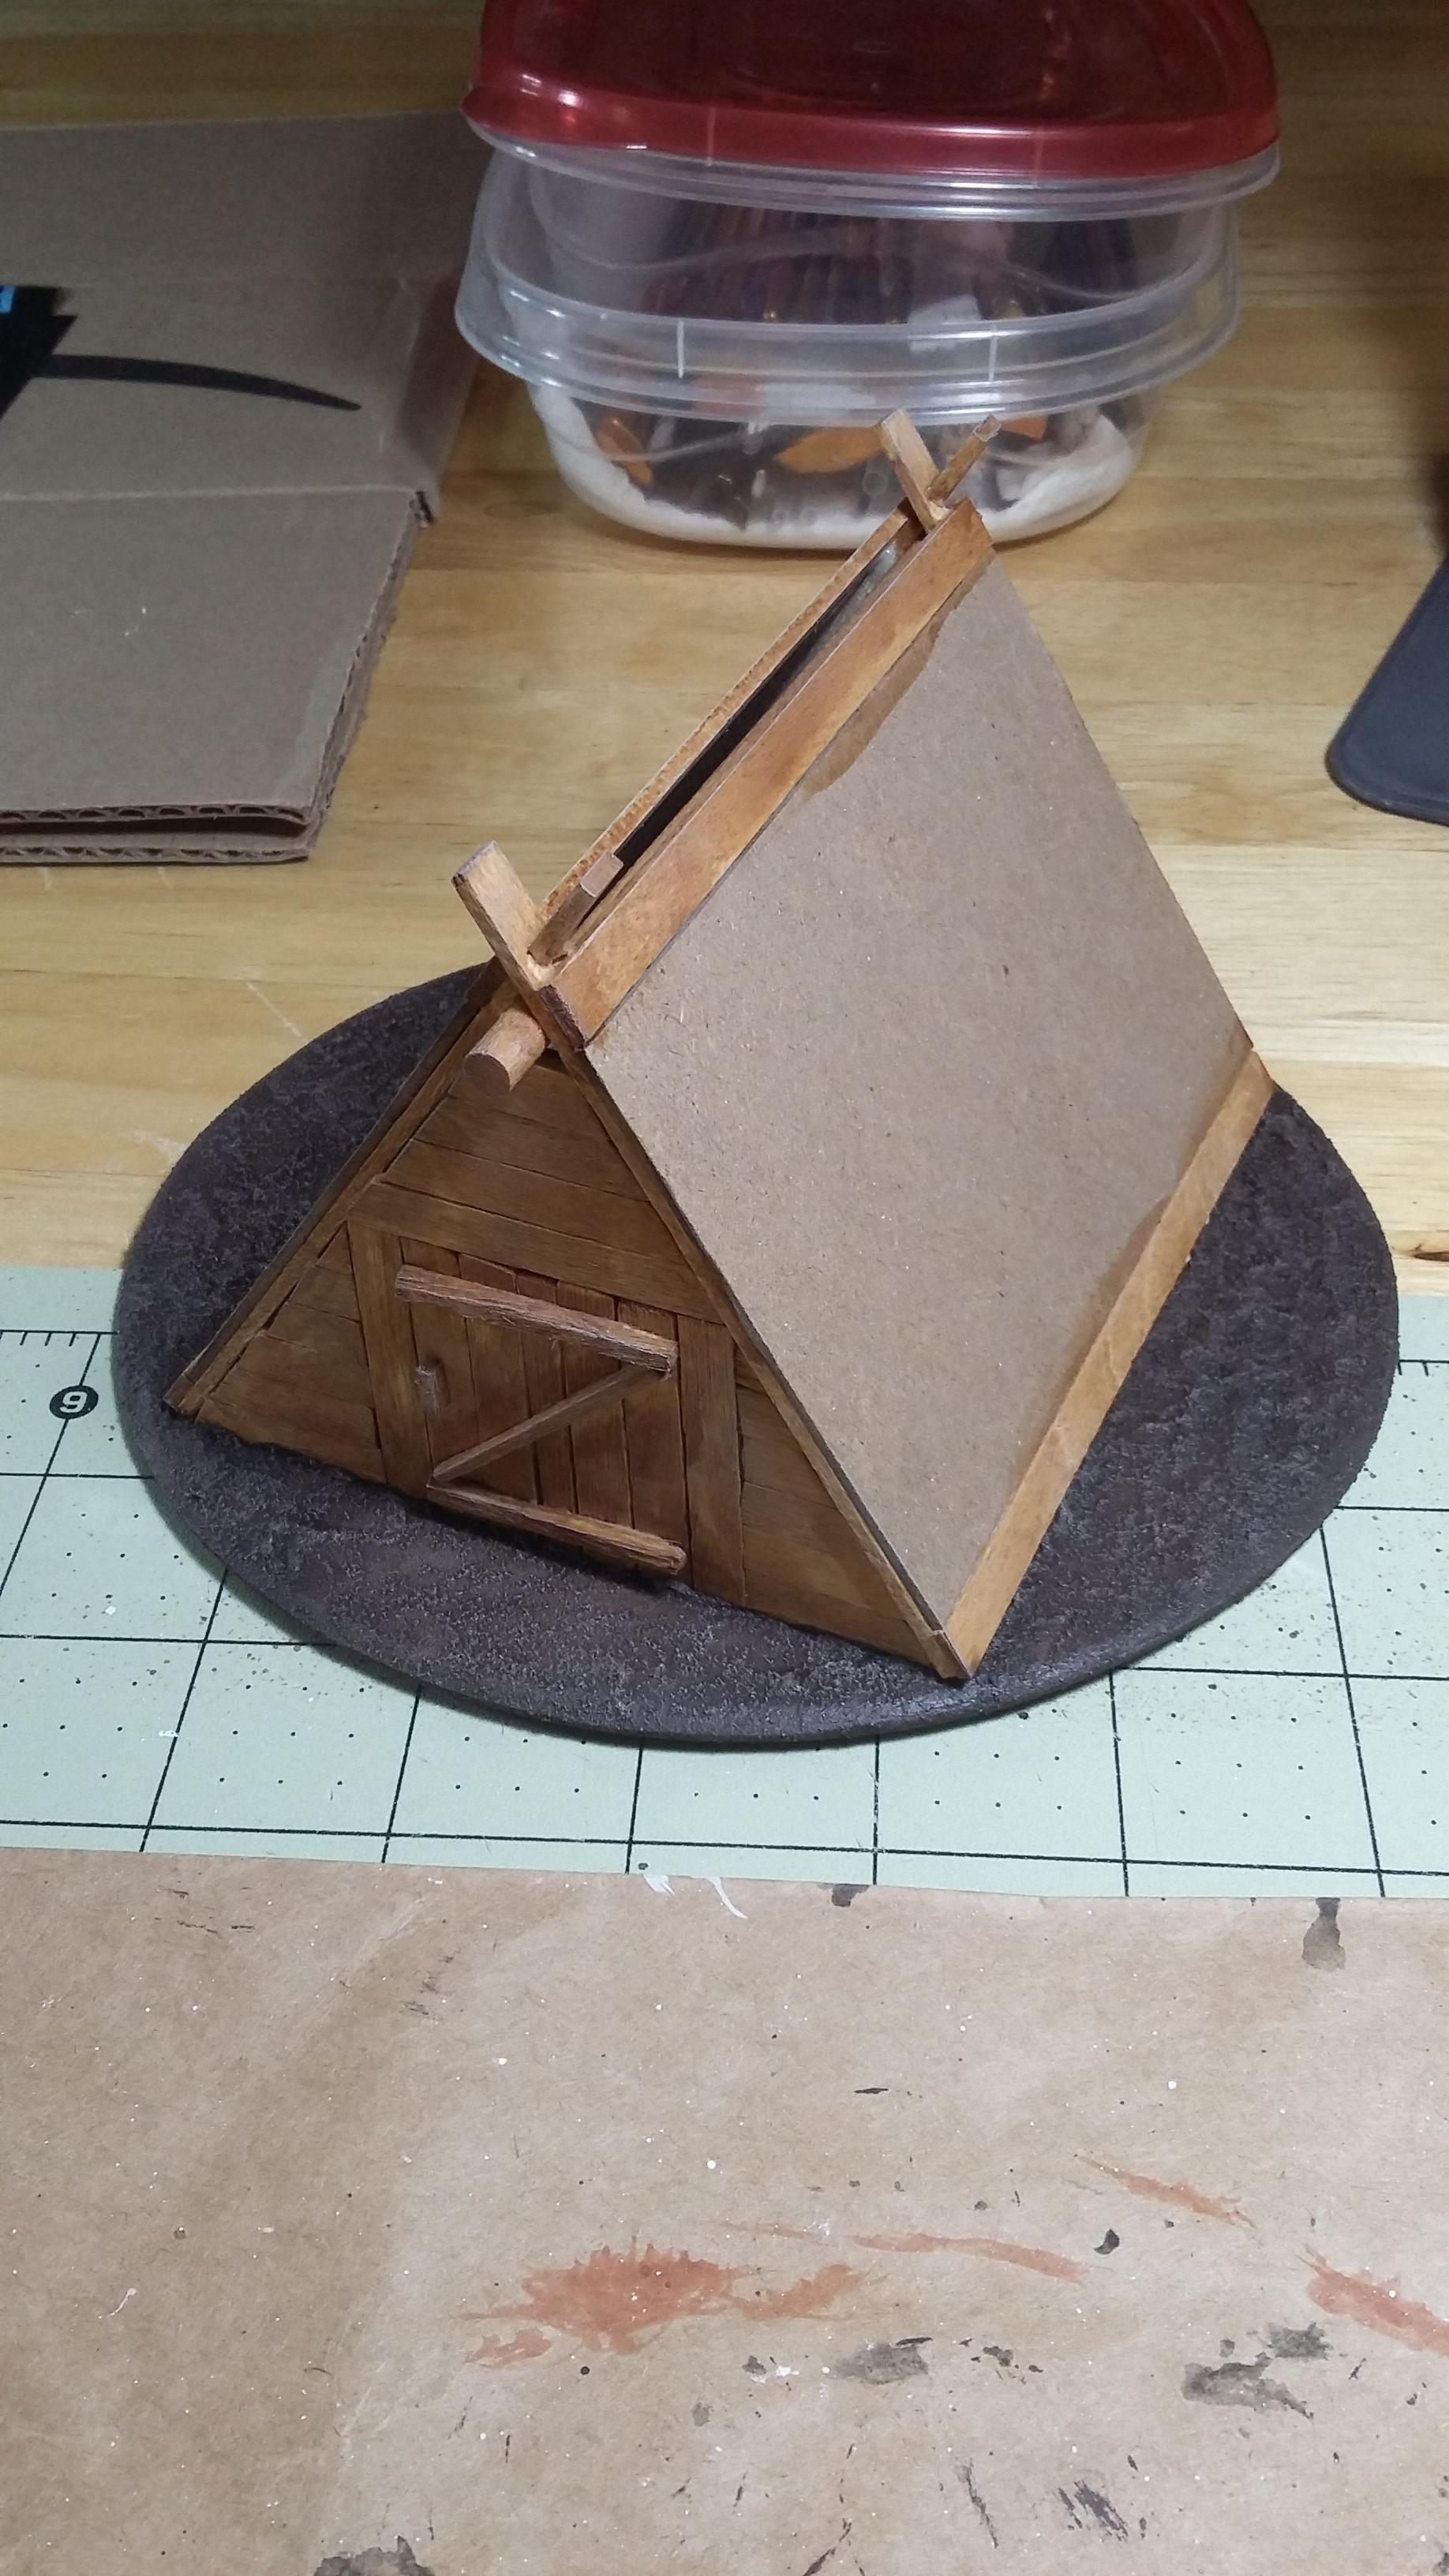 A-frame, Buildings, Historical, Structure, Terrain, Work In Progress